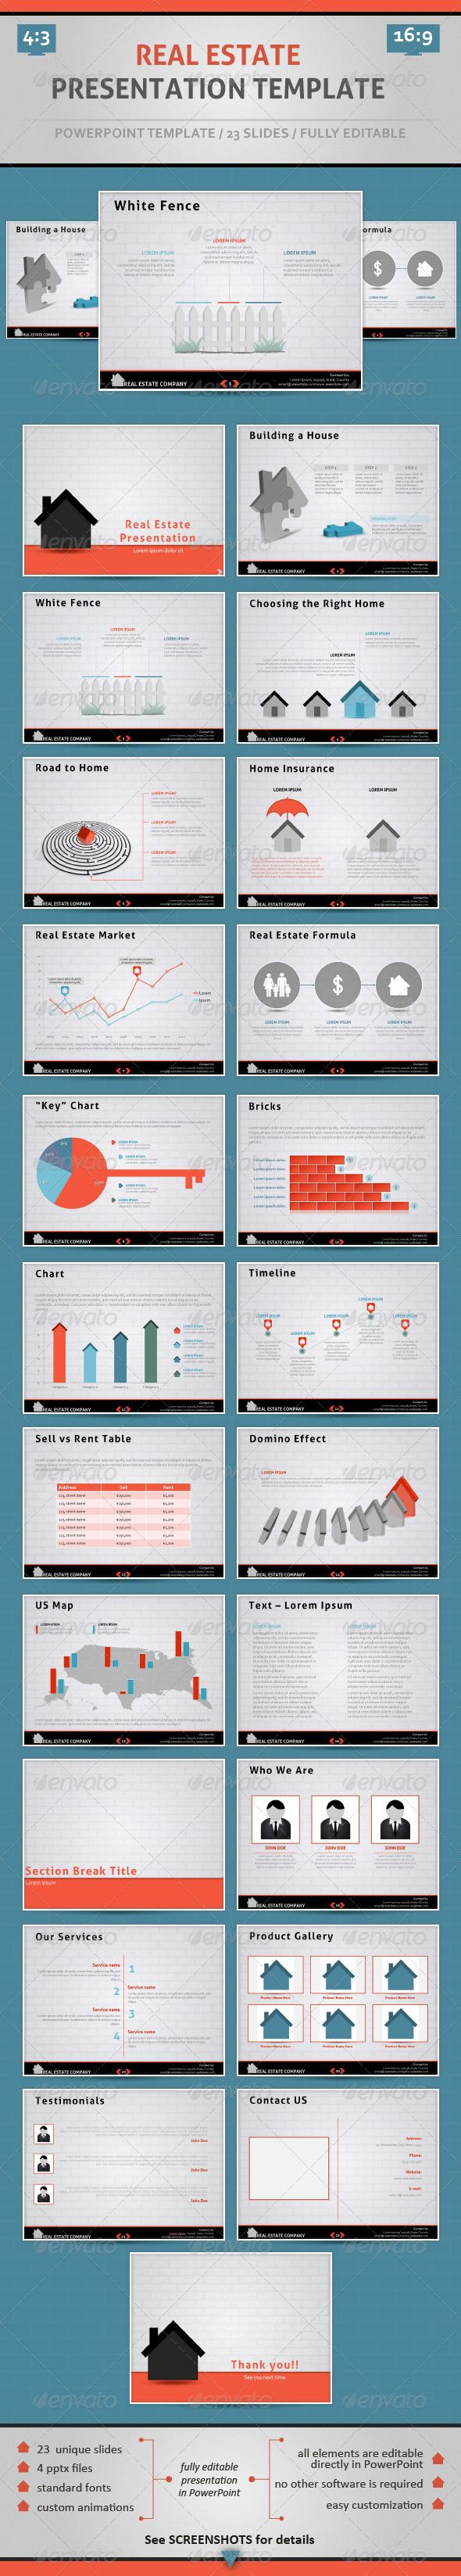 Powerpoint Templates For Sales Presentation